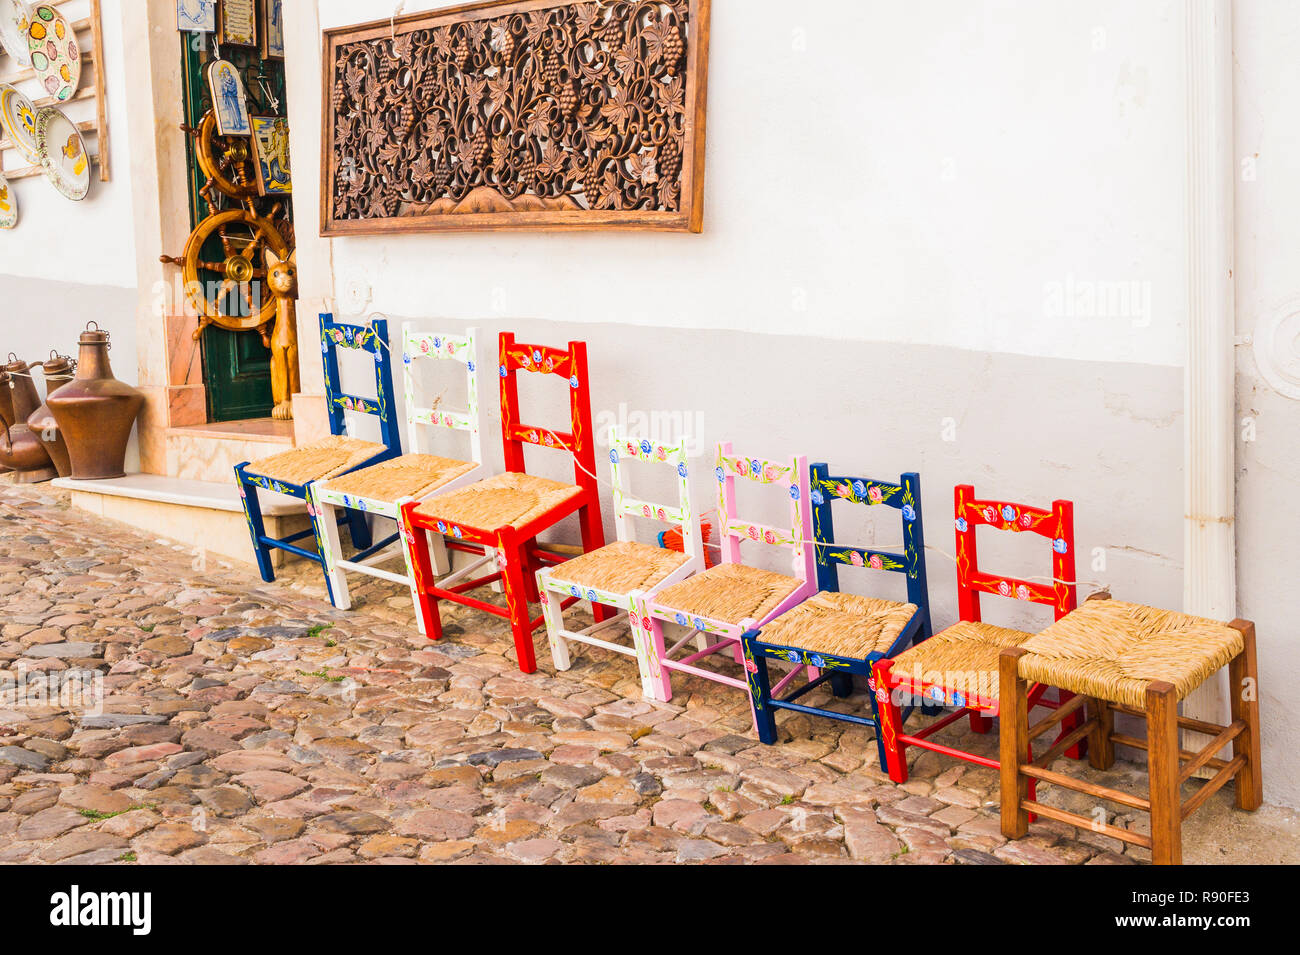 typical multicolored handmade chairs in front of a store selling local handicraft Stock Photo